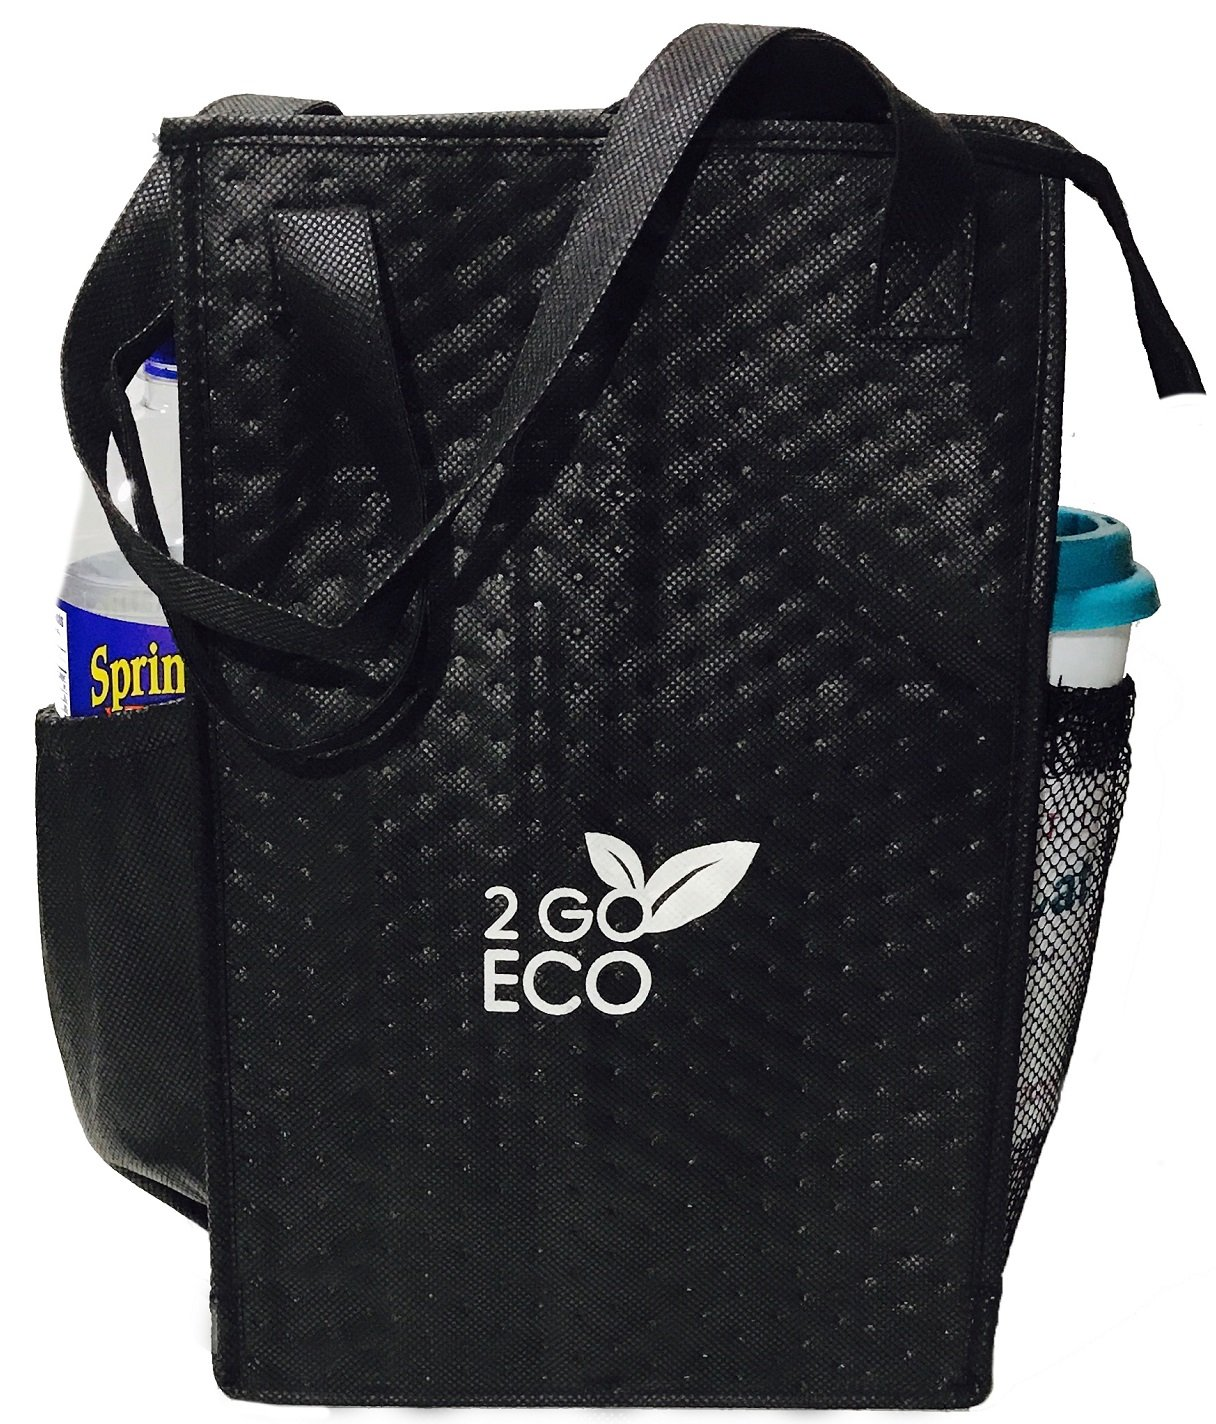 2GOECO Insulated Lunch Bag Wine Cooler Tote Reusable Tall Water Bottle Carrier For Adults Men Women   Black